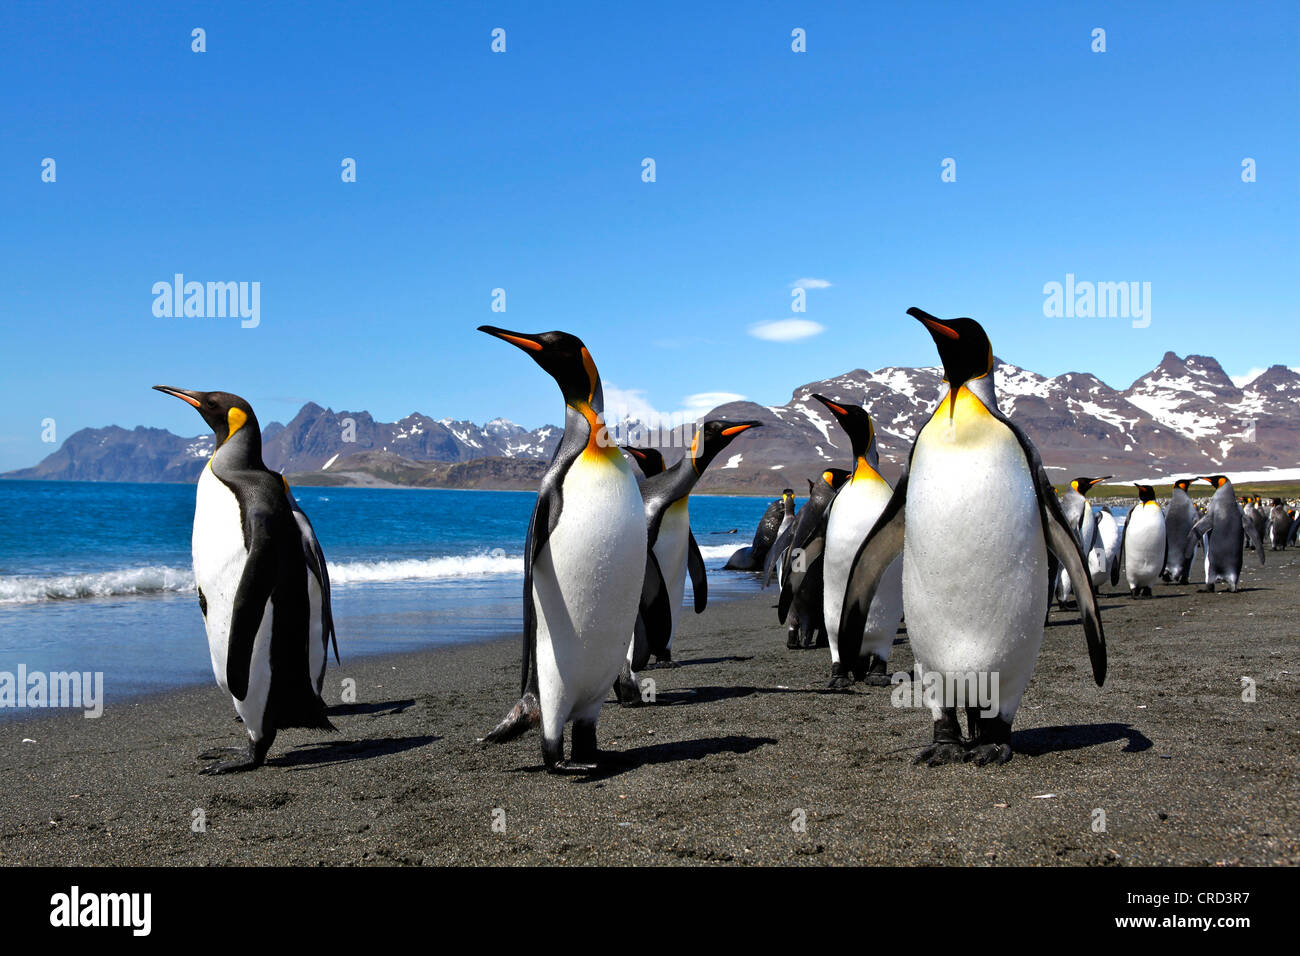 Colony of king penguins at the coast, South Georgia - Stock Image